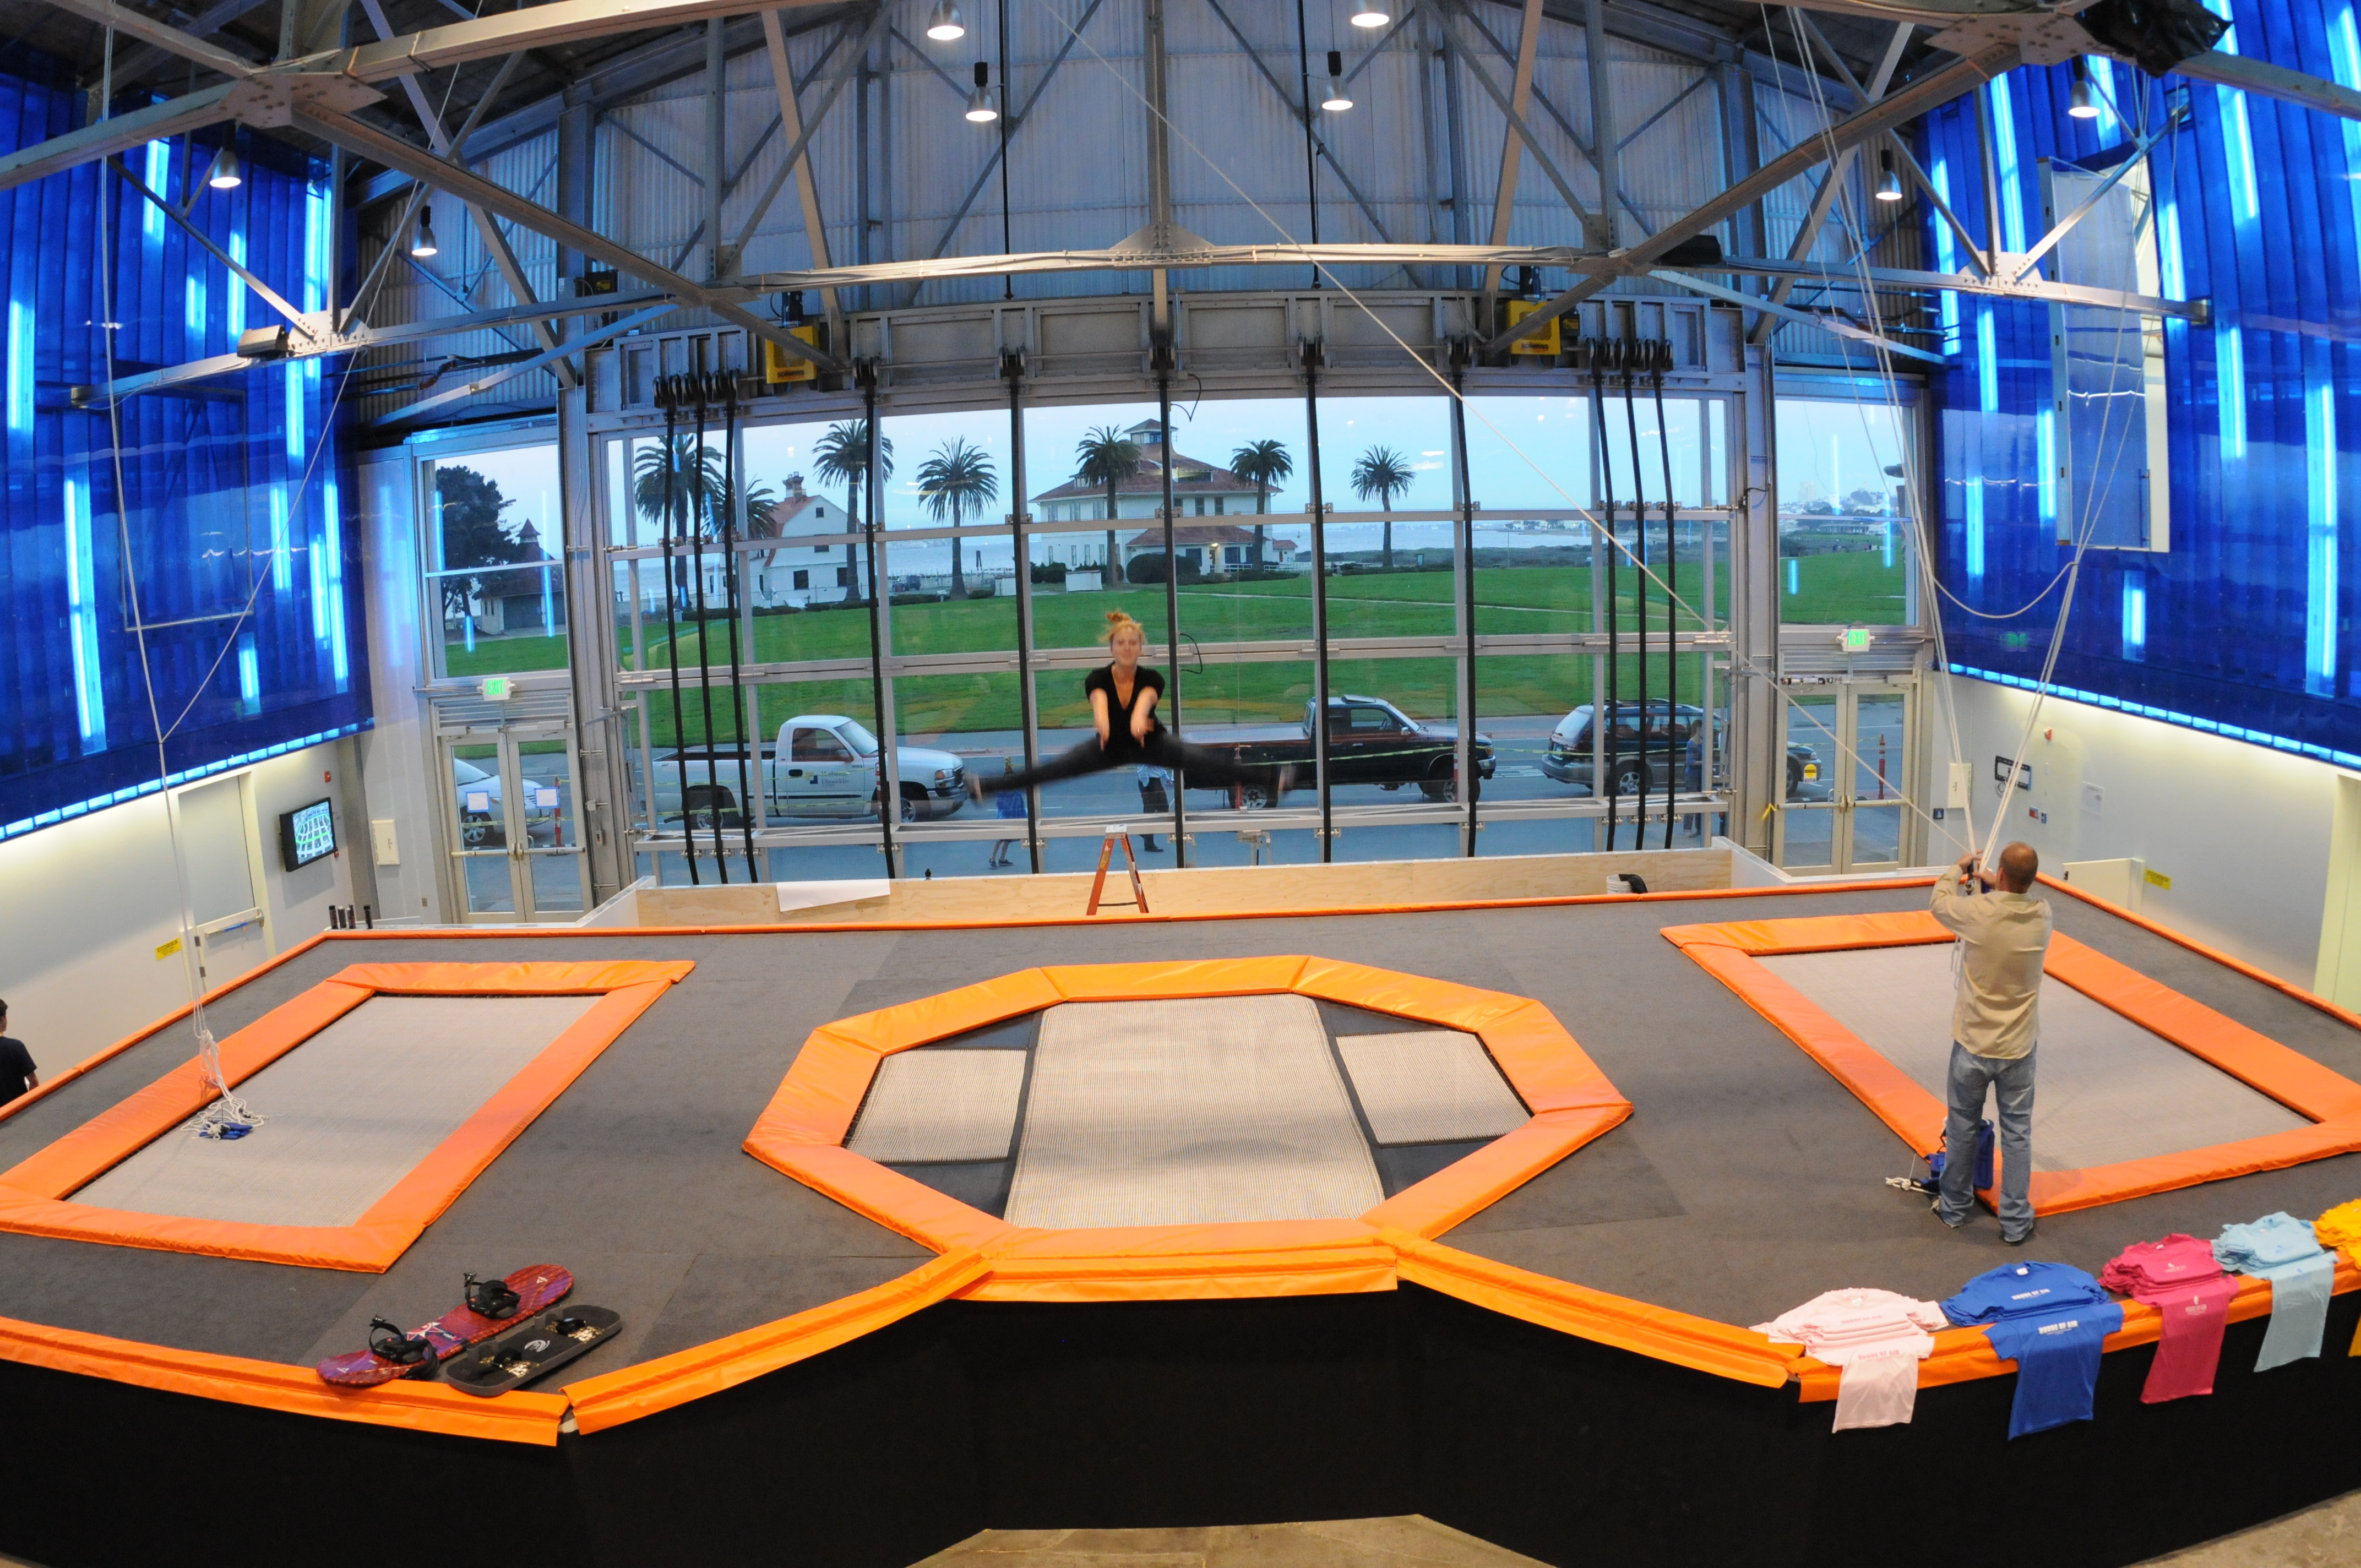 Trampoline room in house - San Francisco Airplane Hangar Transformed Into Trampoline Park San Francisco House Of Air Trampoline Gym Popsugar Fitness